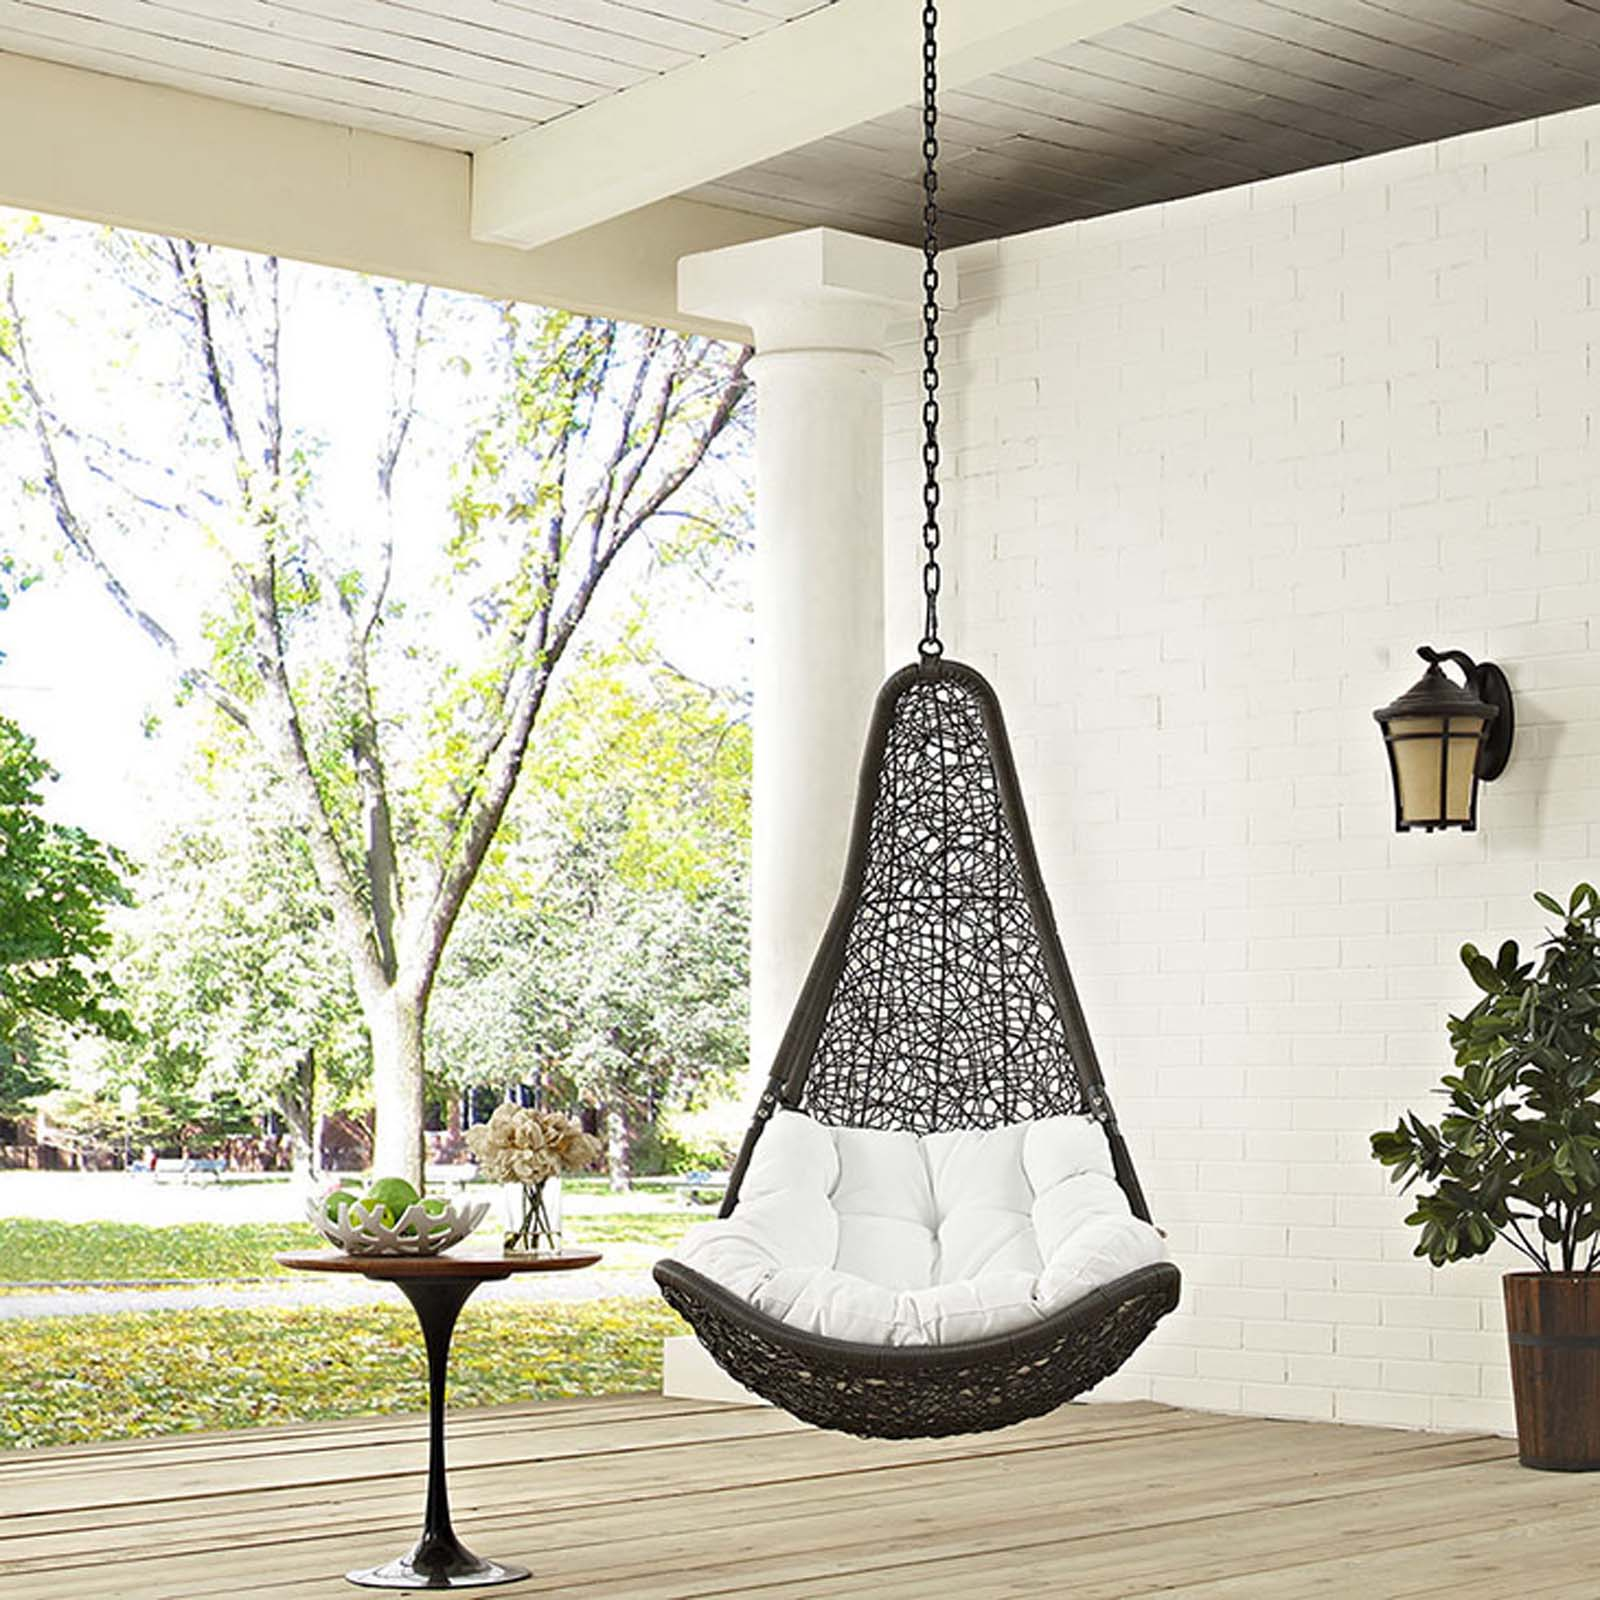 swing chair for a bedroom zero gravity reclining modterior outdoor chairs abate